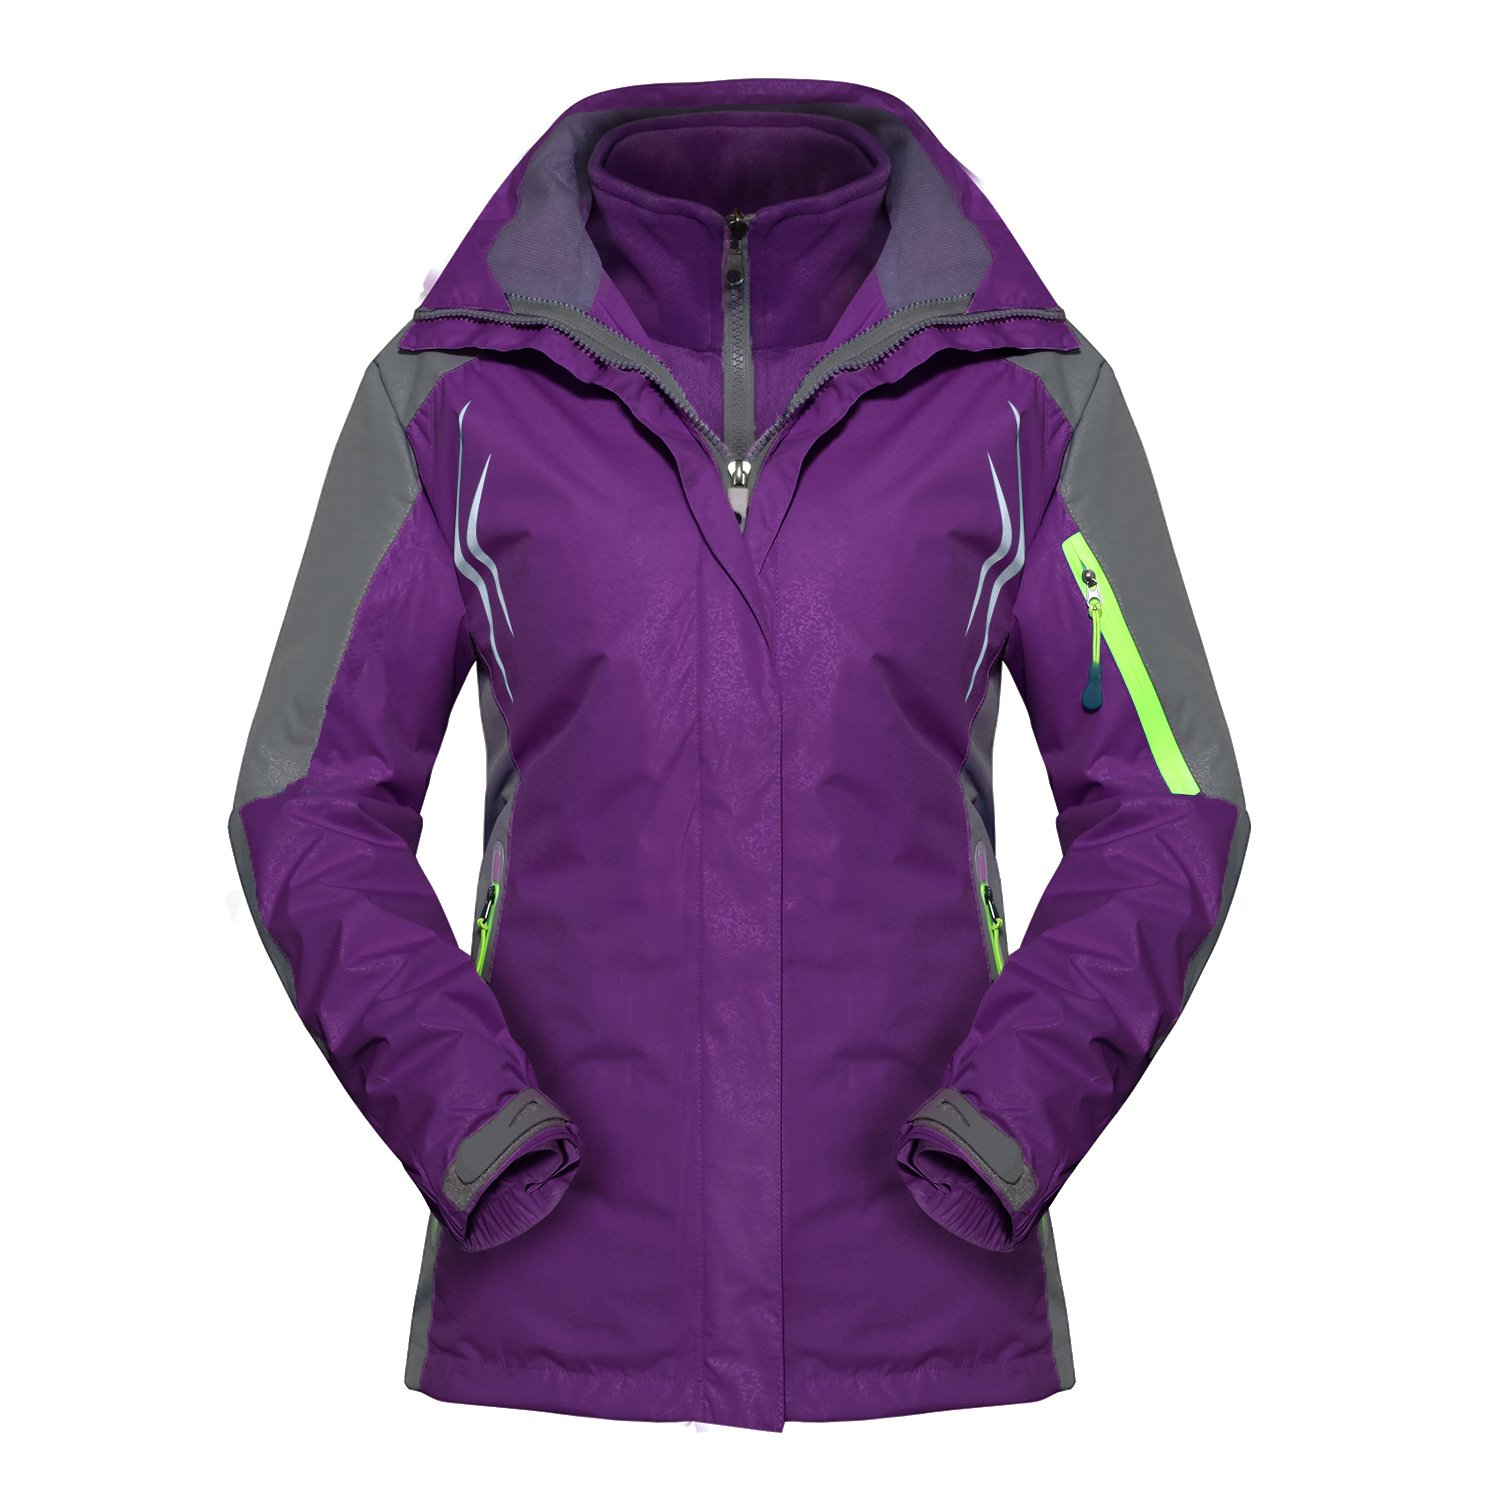 Magcomsen Women's Hiking Waterproof Jacket Fleece Windproof Ski Jacket MCS1305-32-Purple-4XL